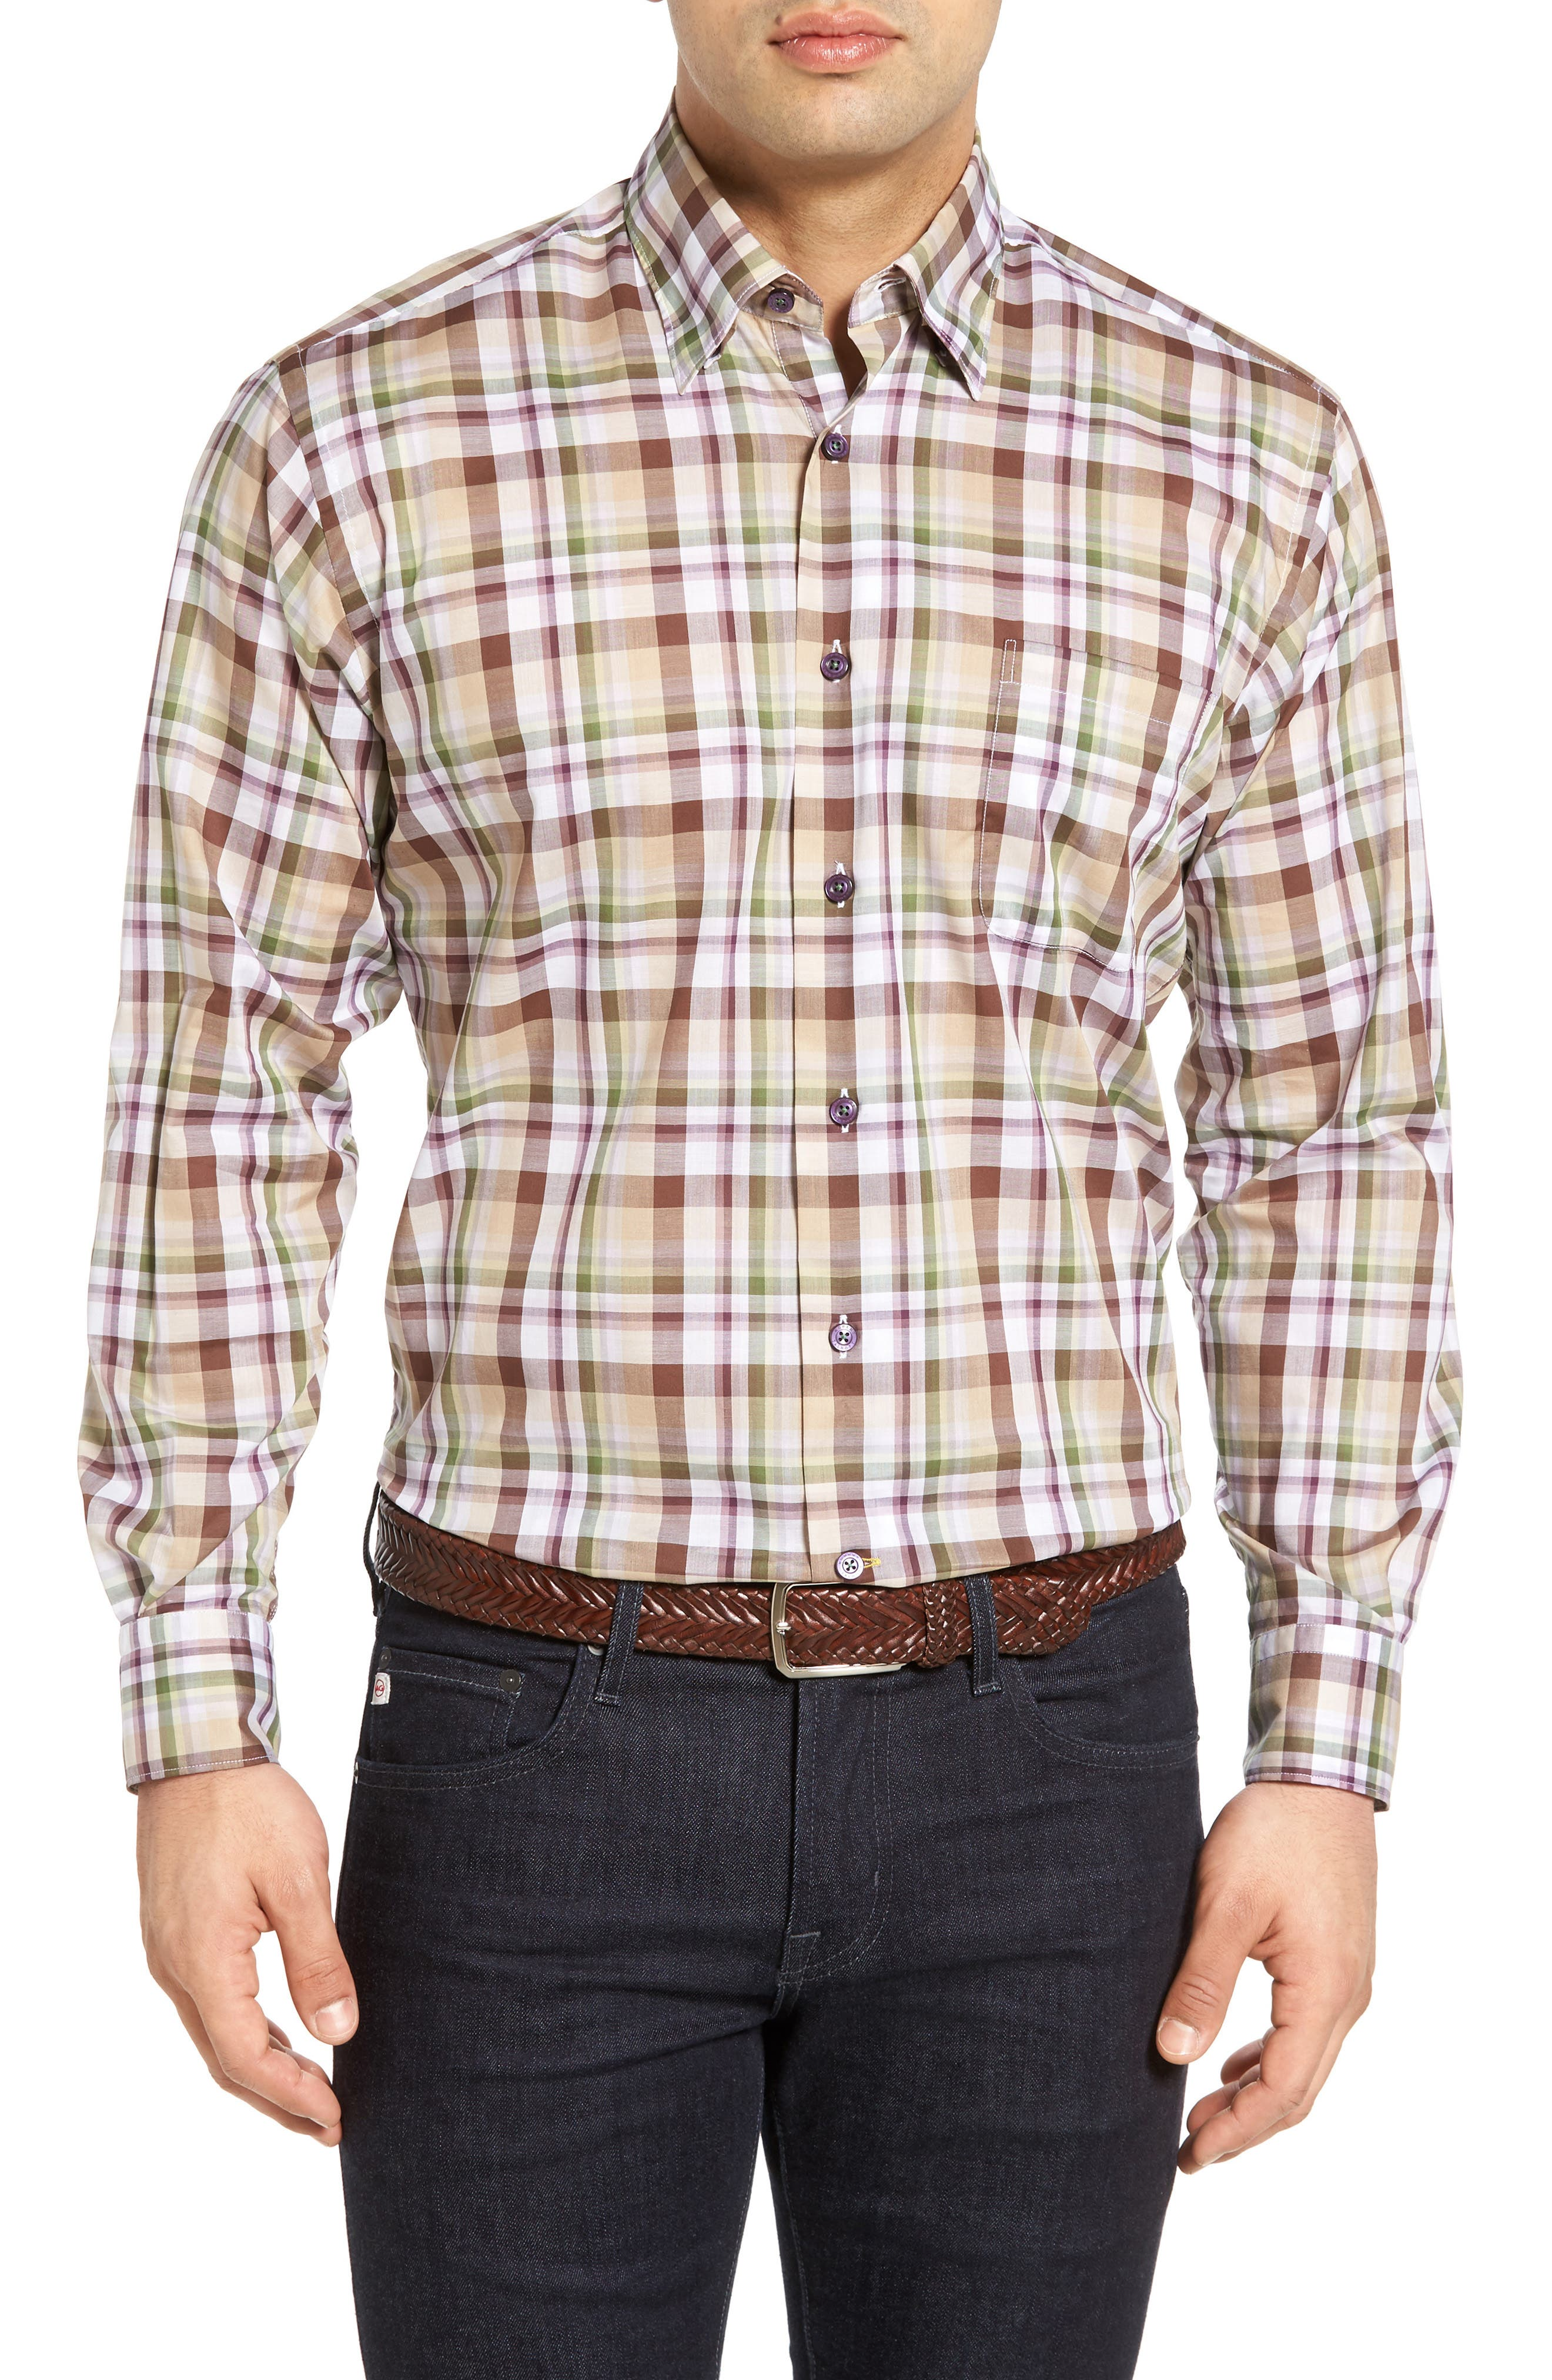 Anderson Classic Fit Sport Shirt,                         Main,                         color, 200